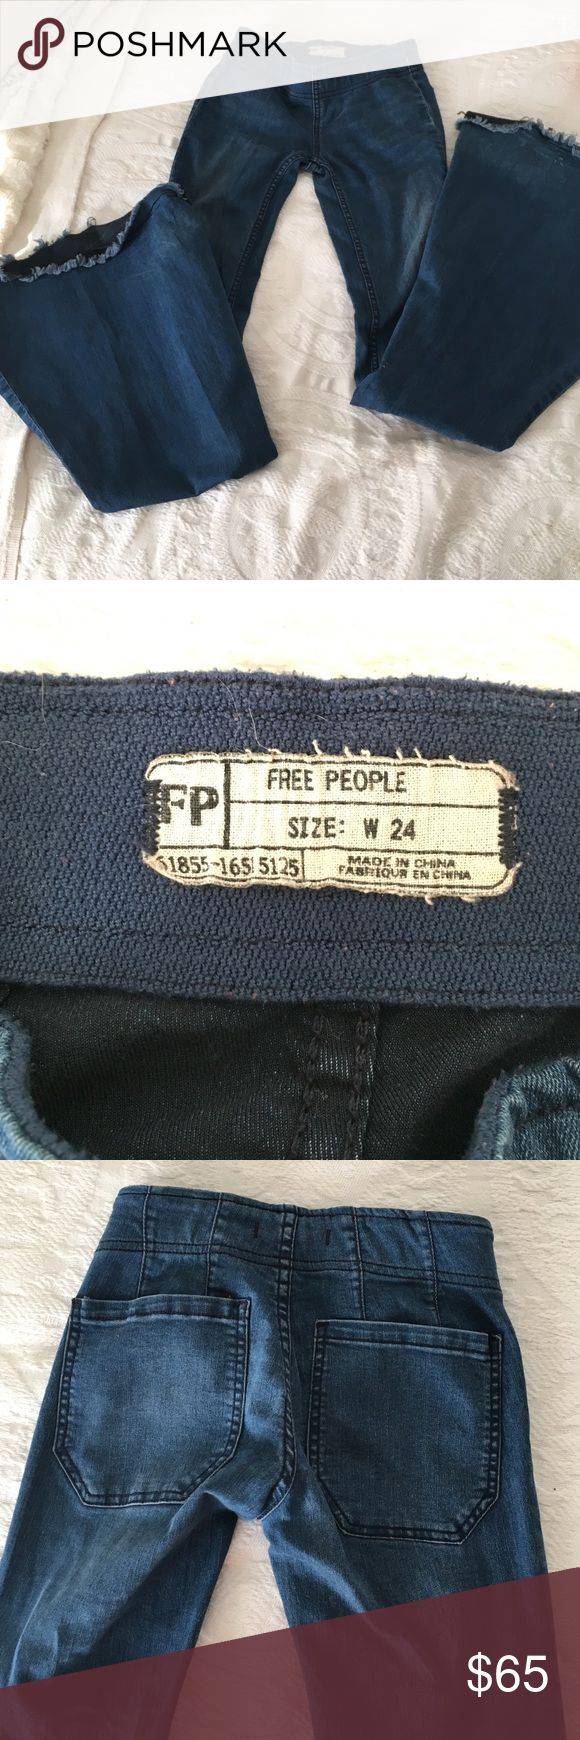 Free People super flare jeans. Size 24 Free People super flare jeans. Size 24. Fits tight through legs and flares at the bottom. Hardly ever worn, in great condition. Elastic waist band. Free People Jeans Flare & Wide Leg